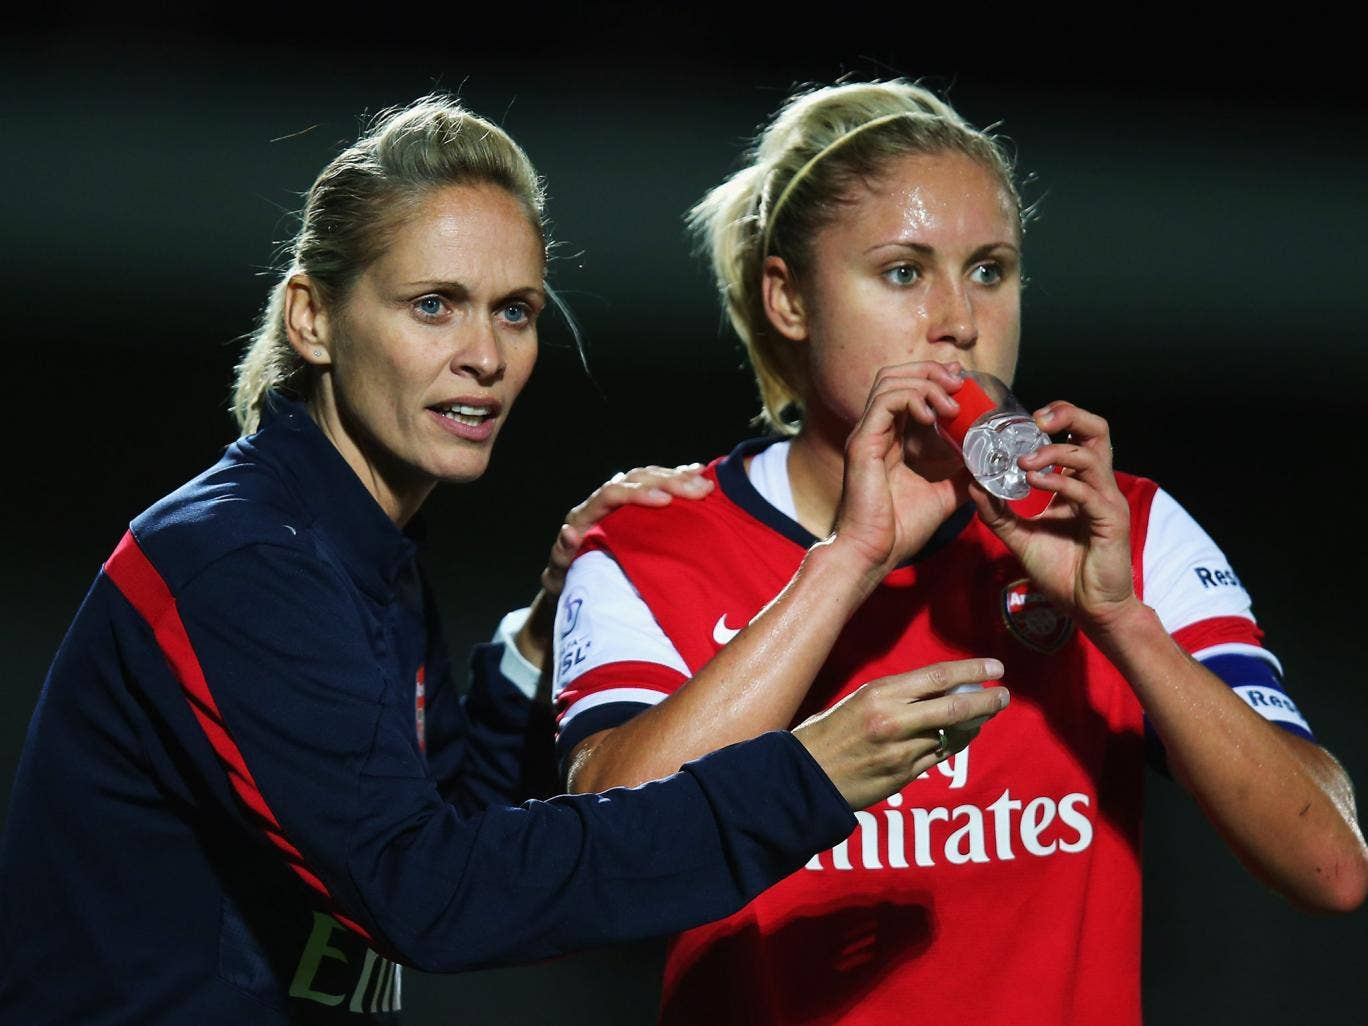 Arsenal Ladies Manager Shelley Kerr with former captain Steph Houghton